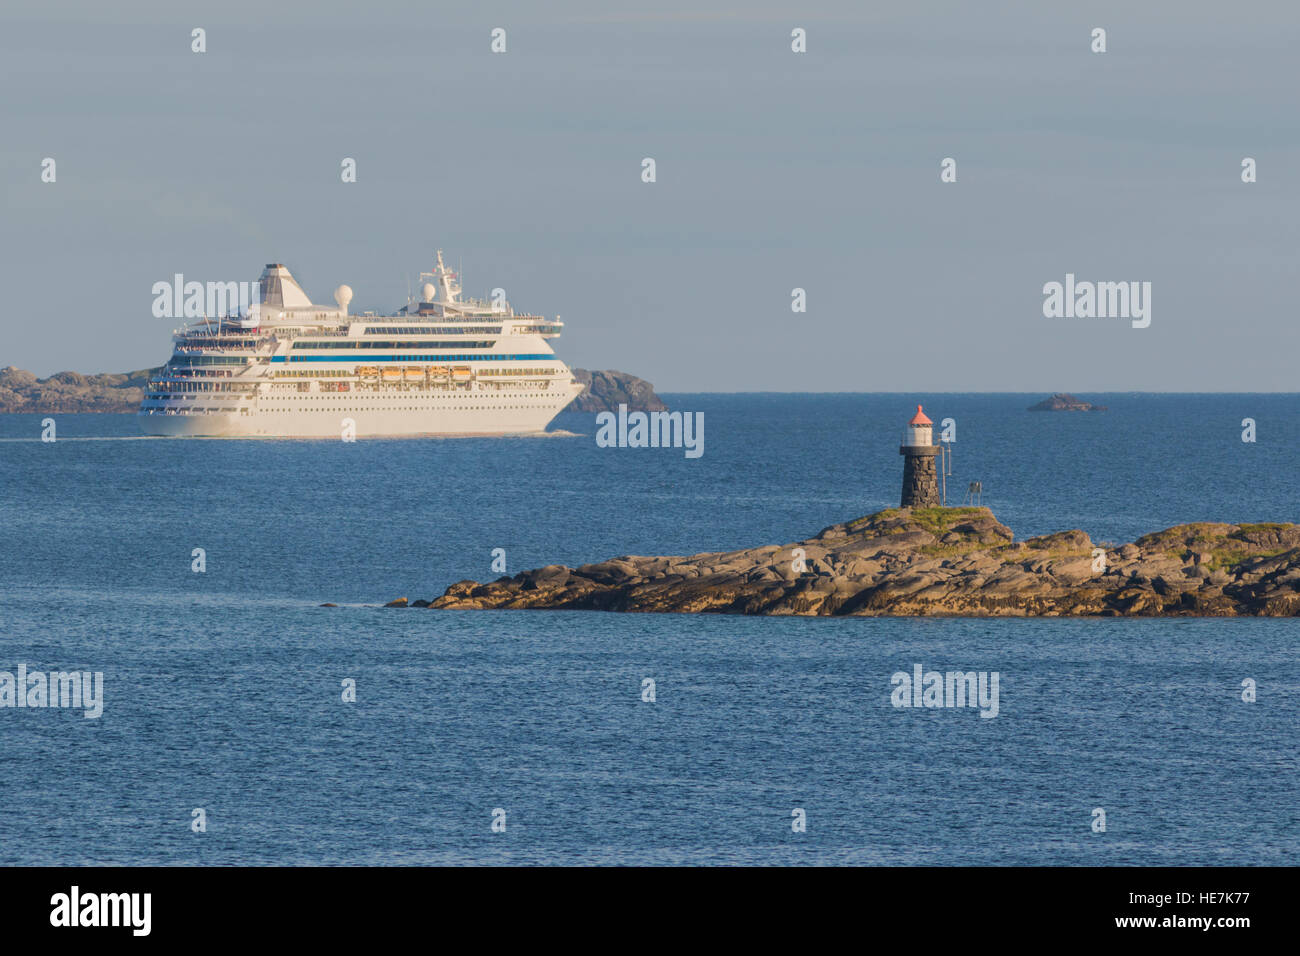 Cruise liner leaving port and going out to sea passing a lighthouse, Gravdal, Lofoten Islands, Norway - Stock Image